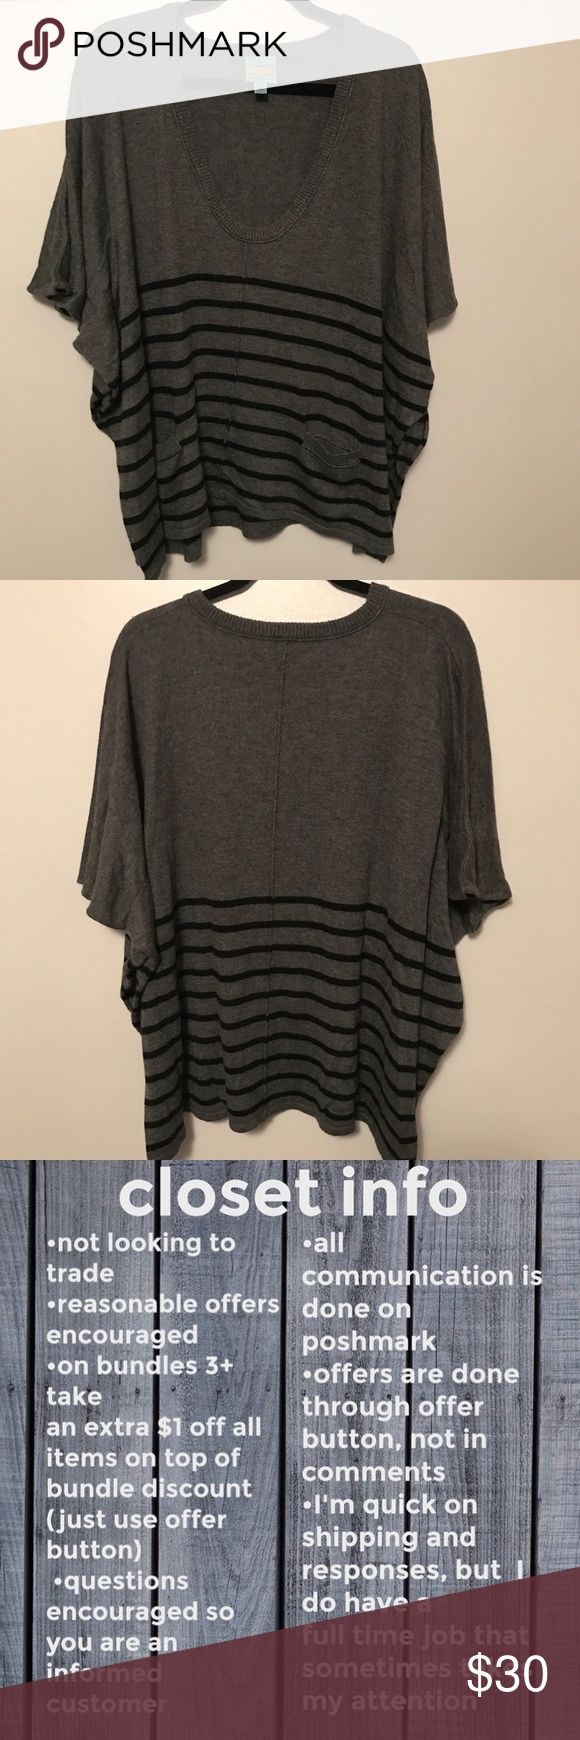 C&C California poncho sweater This sweater is in excellent used condition. Size is XS/S Fabric content: 35% nylon/35% rayon/25% wool/5% cashmere (dry clean only) *Bundle with C&C California Henley sweater for savings on both items!* C&C California Sweaters Shrugs & Ponchos